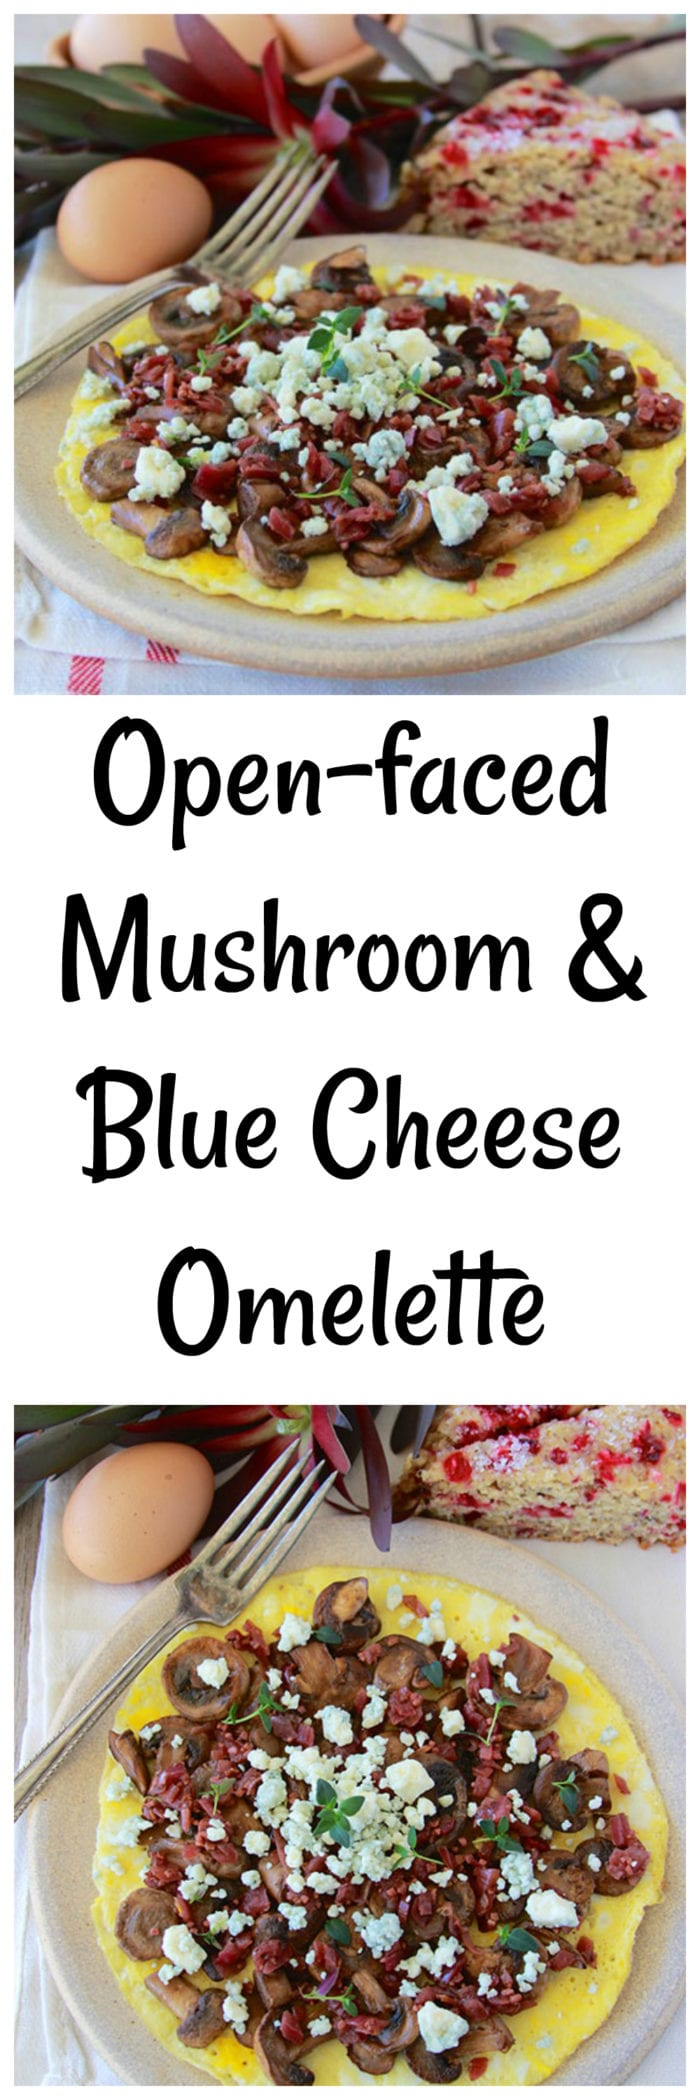 Open-faced Mushroom and Blue Cheese Omelette is a healthy and deliciously simple breakfast for you and your family!www.cookingwithruthie.com